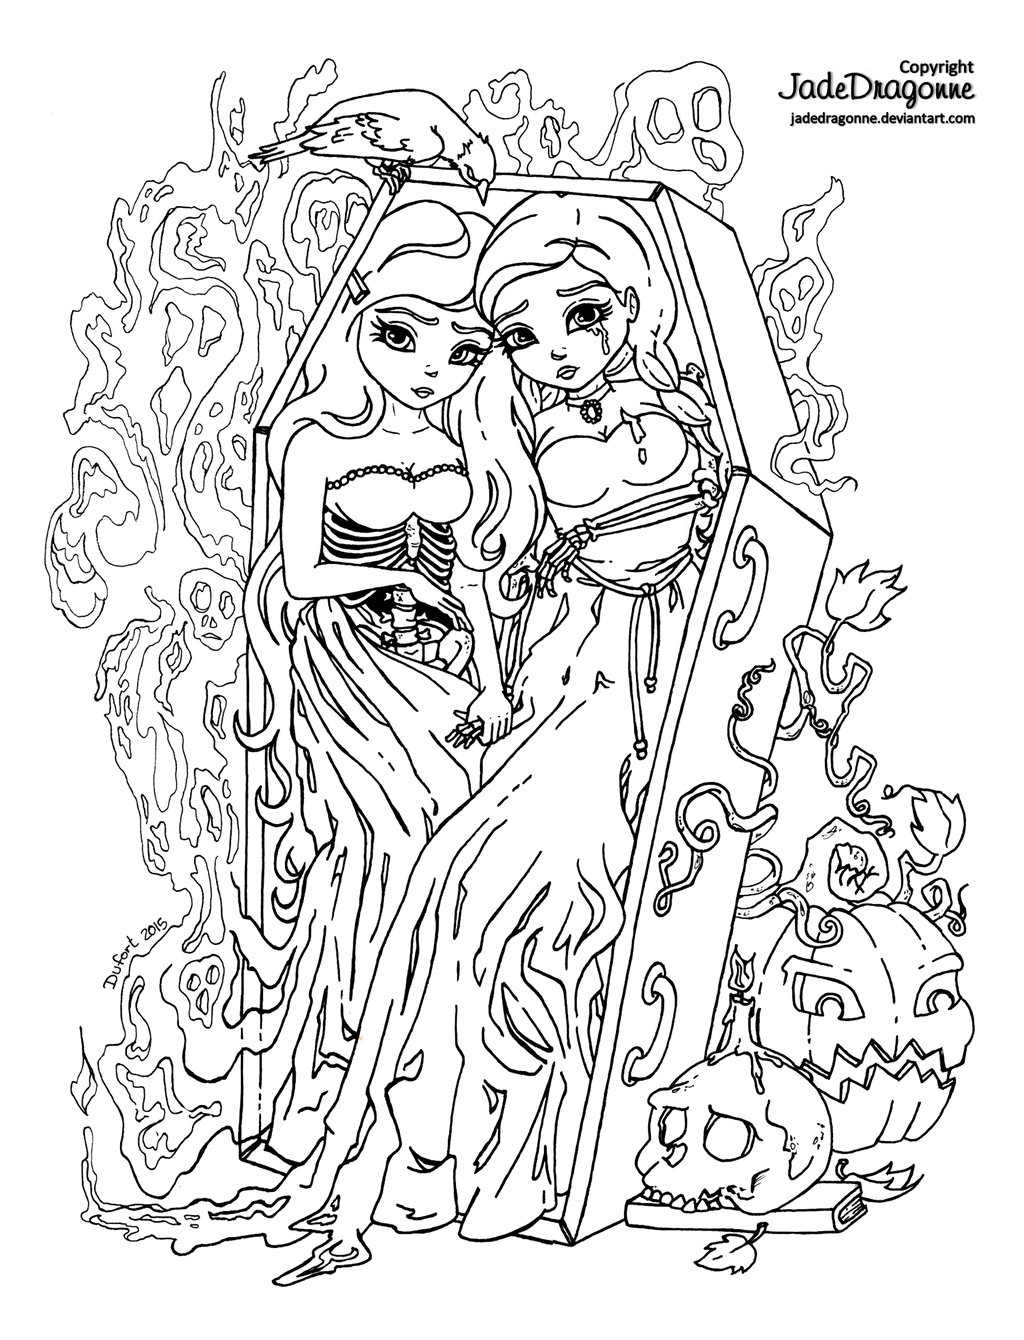 Pin by Bri Williams on People coloring pages | Pinterest | Halloween ...